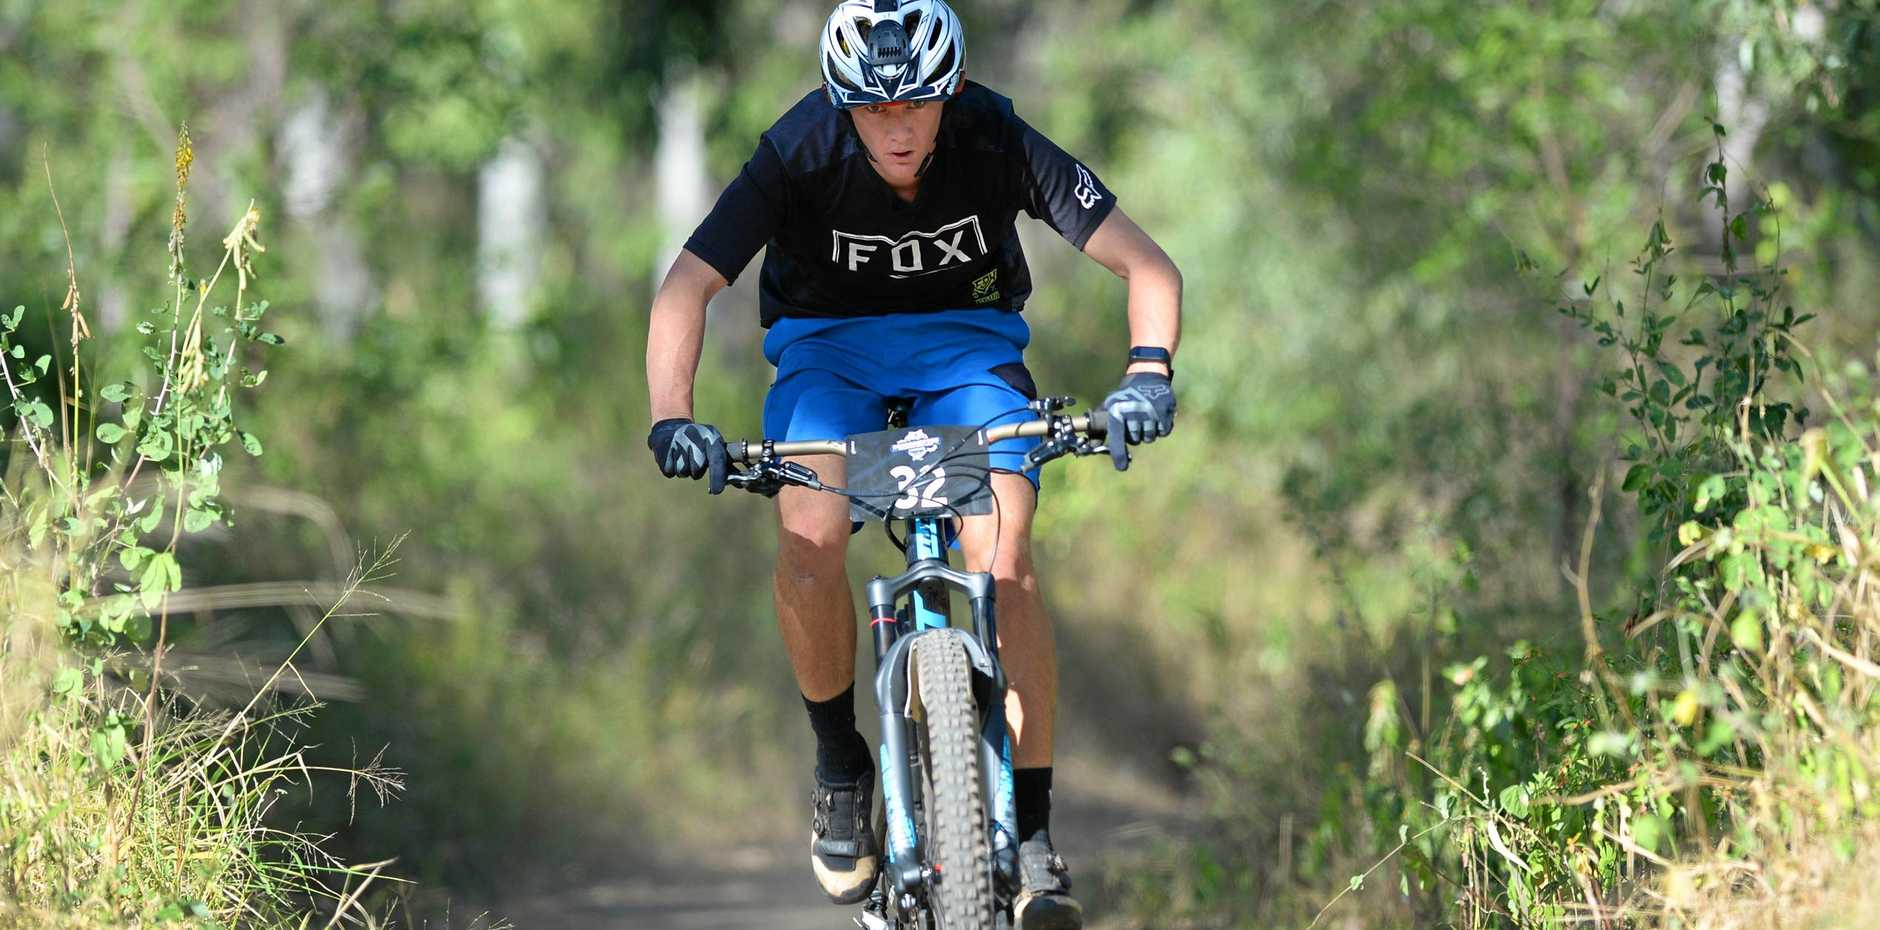 ENDURANCE TEST: Anthony Oakeshott powers into the six-hour event on the trails at First Turkey on Saturday. He and teammate Clinton Daniels completed nine laps to win the team-of-two category.